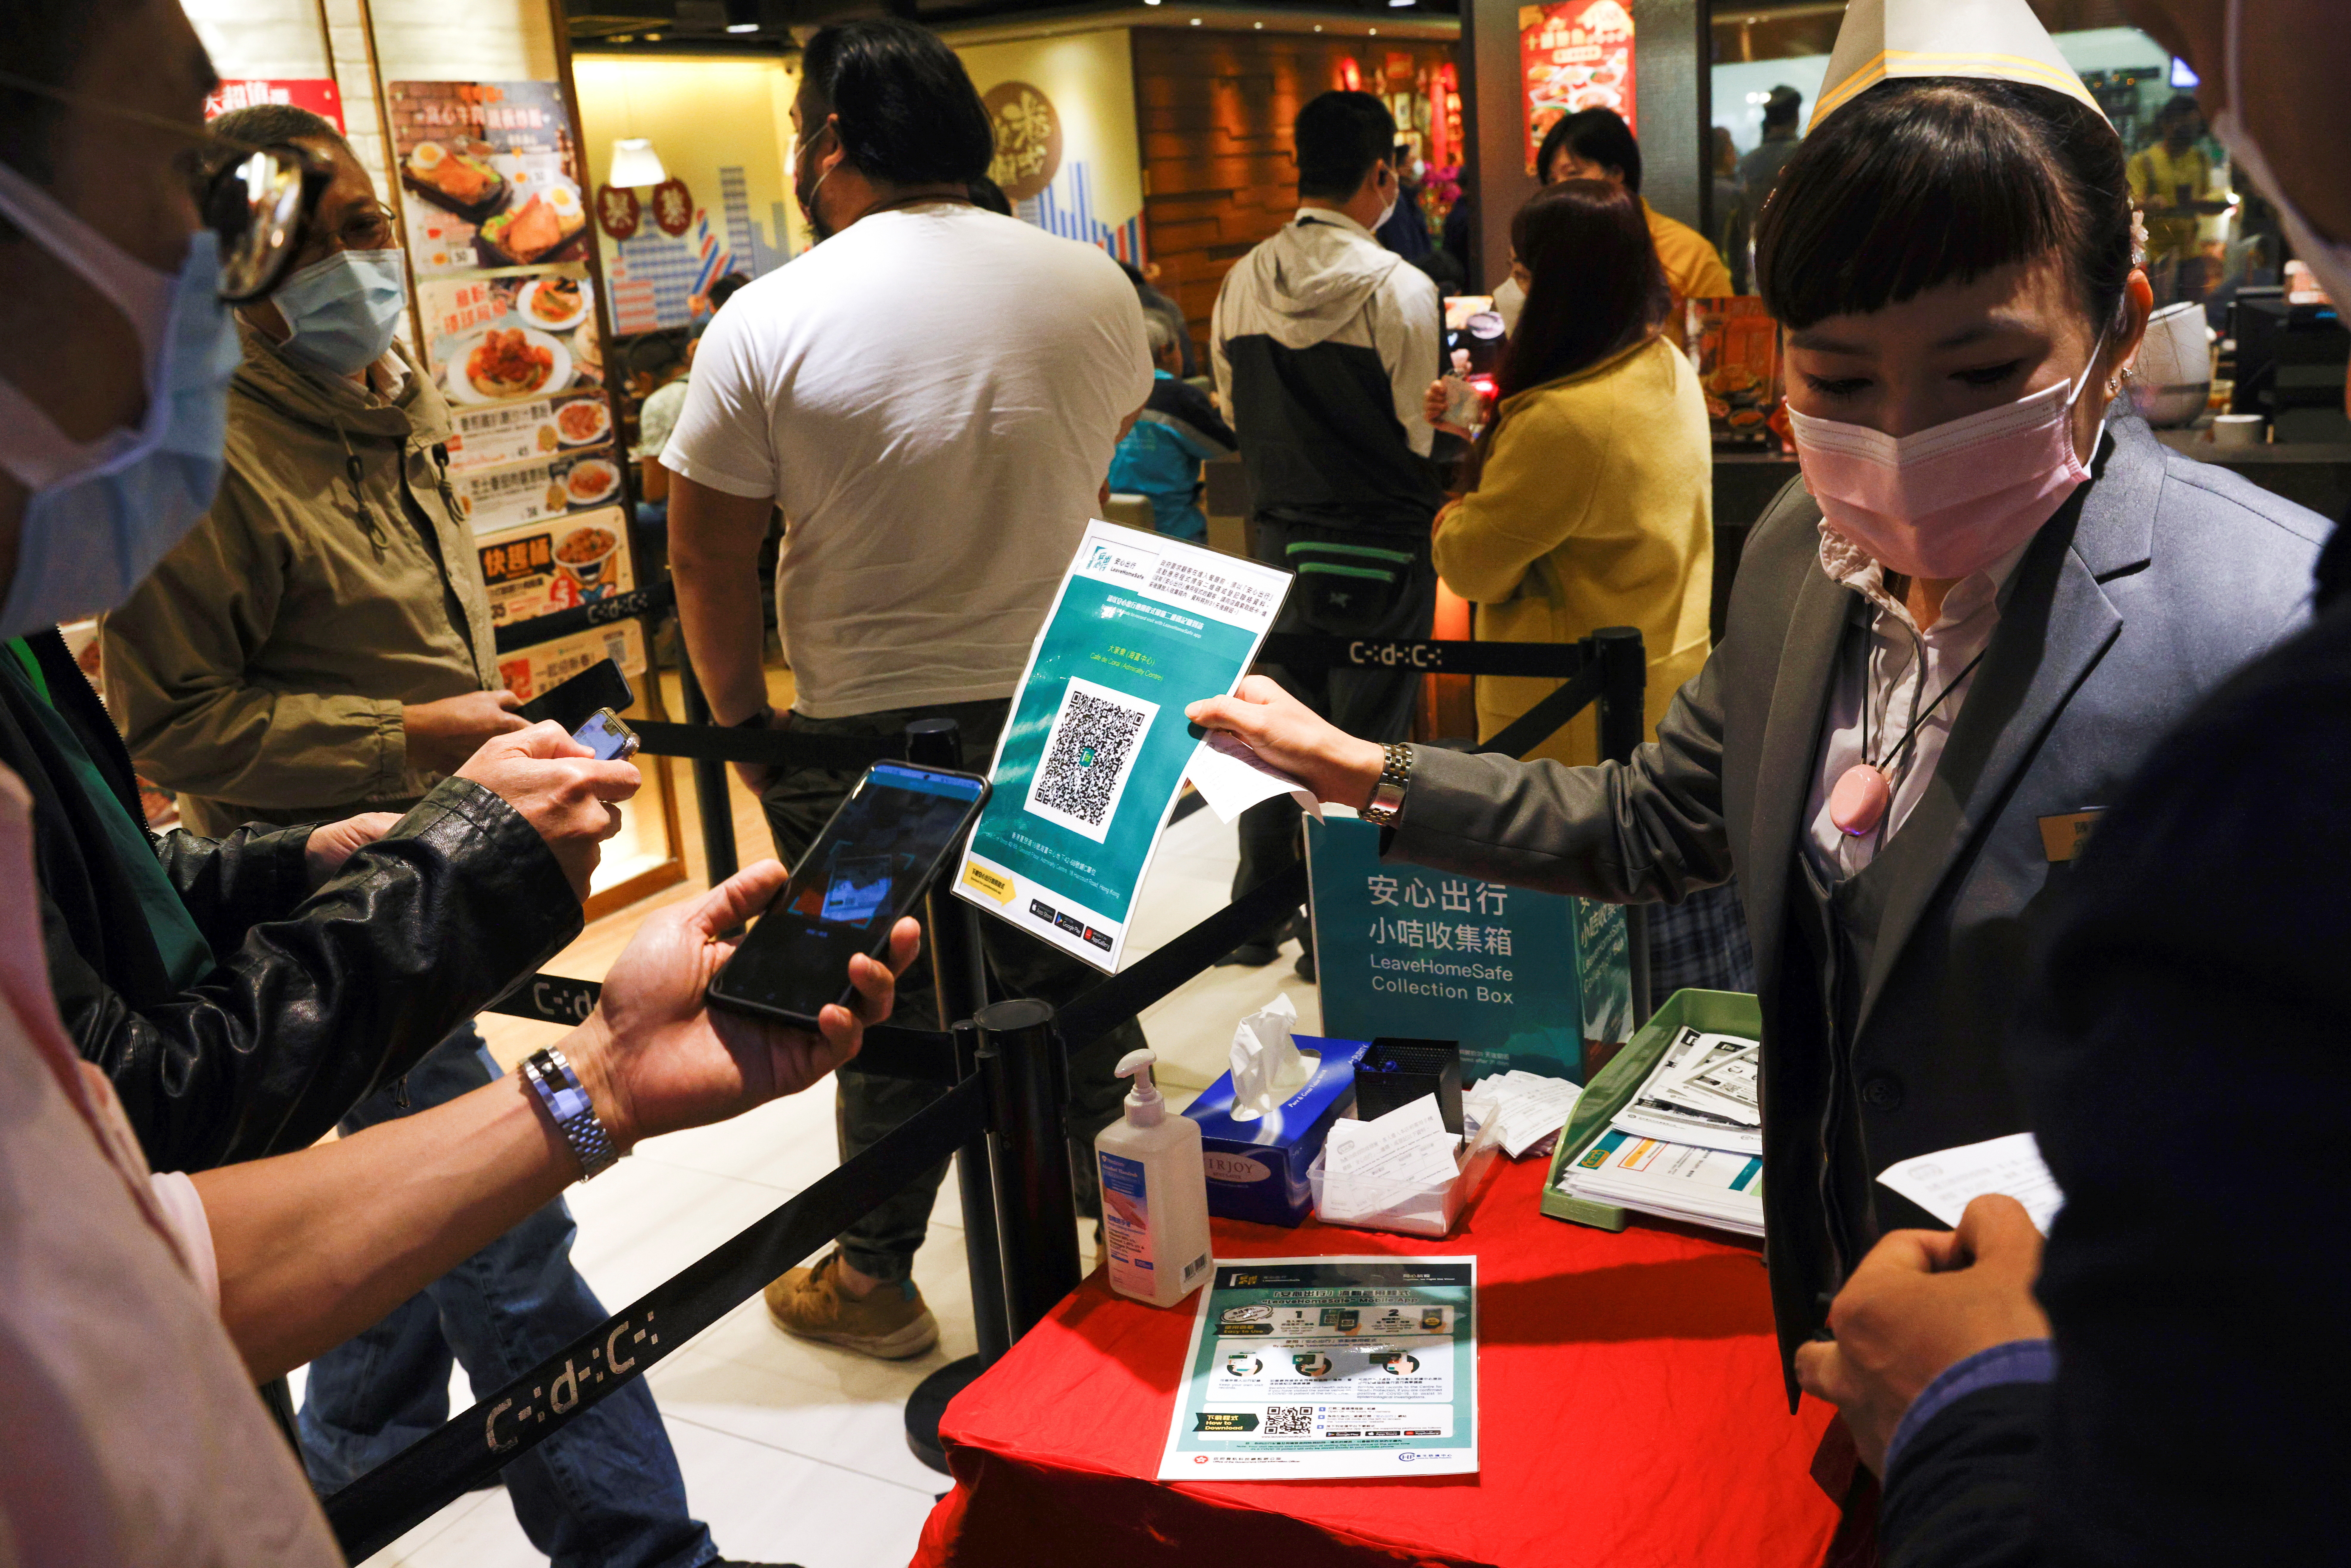 """A staff member holds a QR code for the """"LeaveHomeSafe"""" COVID-19 contact-tracing app to consumers at a restaurant, following the coronavirus disease (COVID-19) outbreak, in Hong Kong, China February 18, 2021. REUTERS/Tyrone Siu - RC2TUL9H0U2N"""